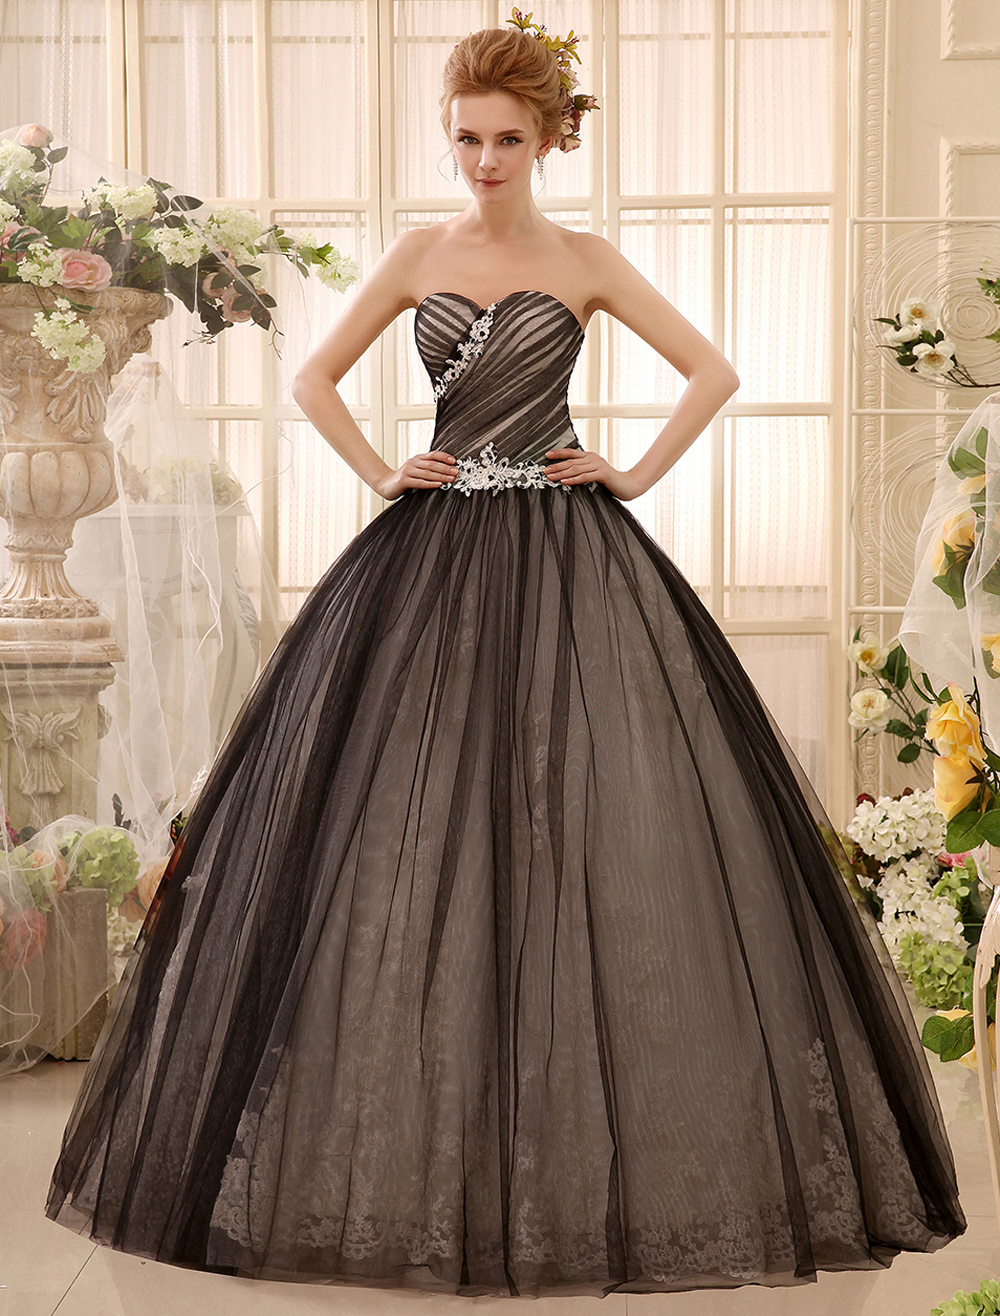 Black Wedding Dress Beading Ball Gown Floor-Length with Sweetheart ...